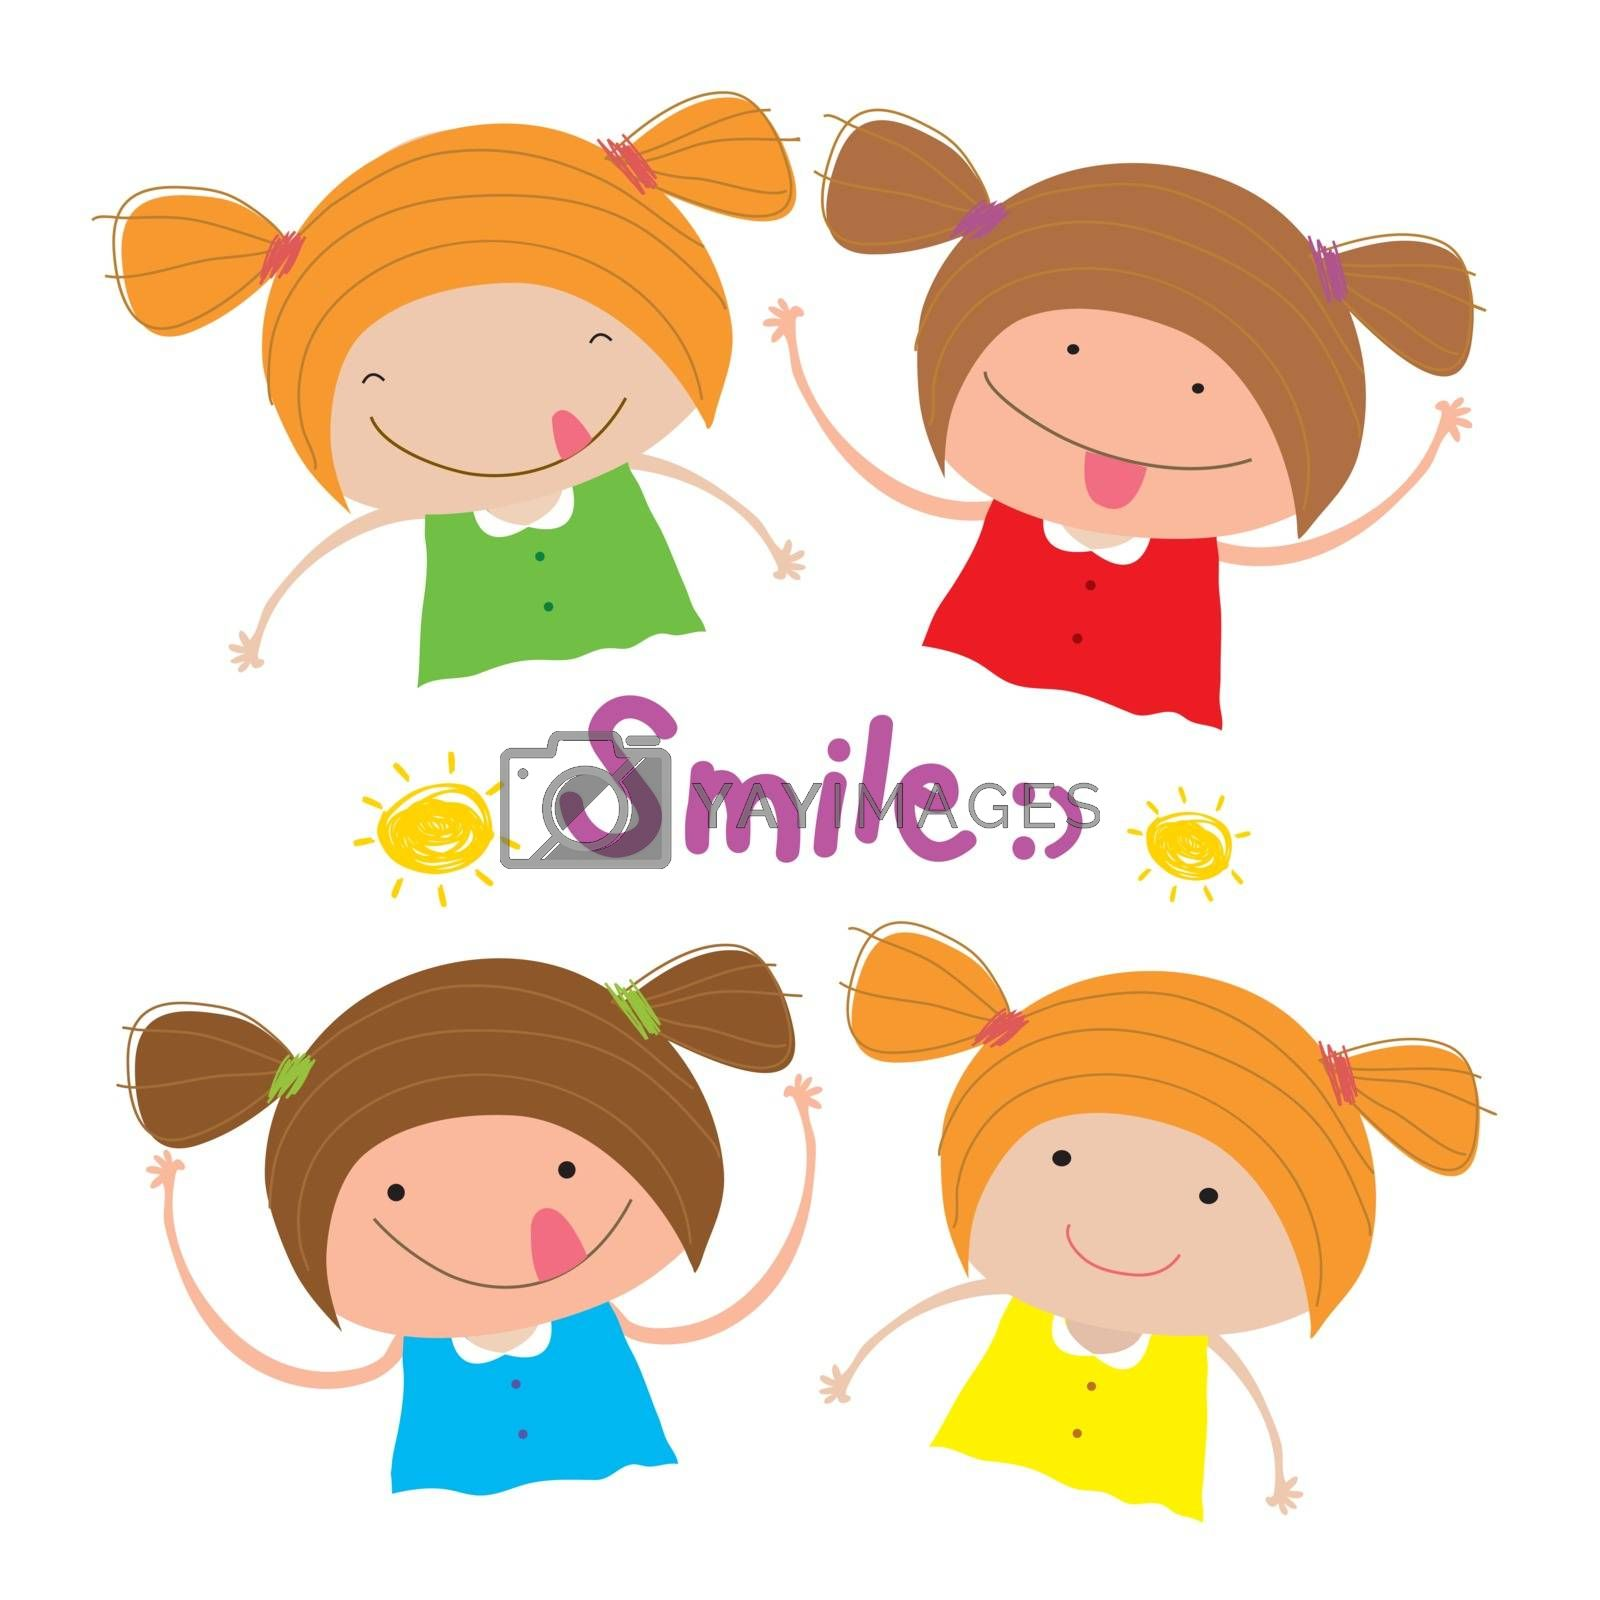 Kids Girl Children Smile Happy Cartoon Character Vector